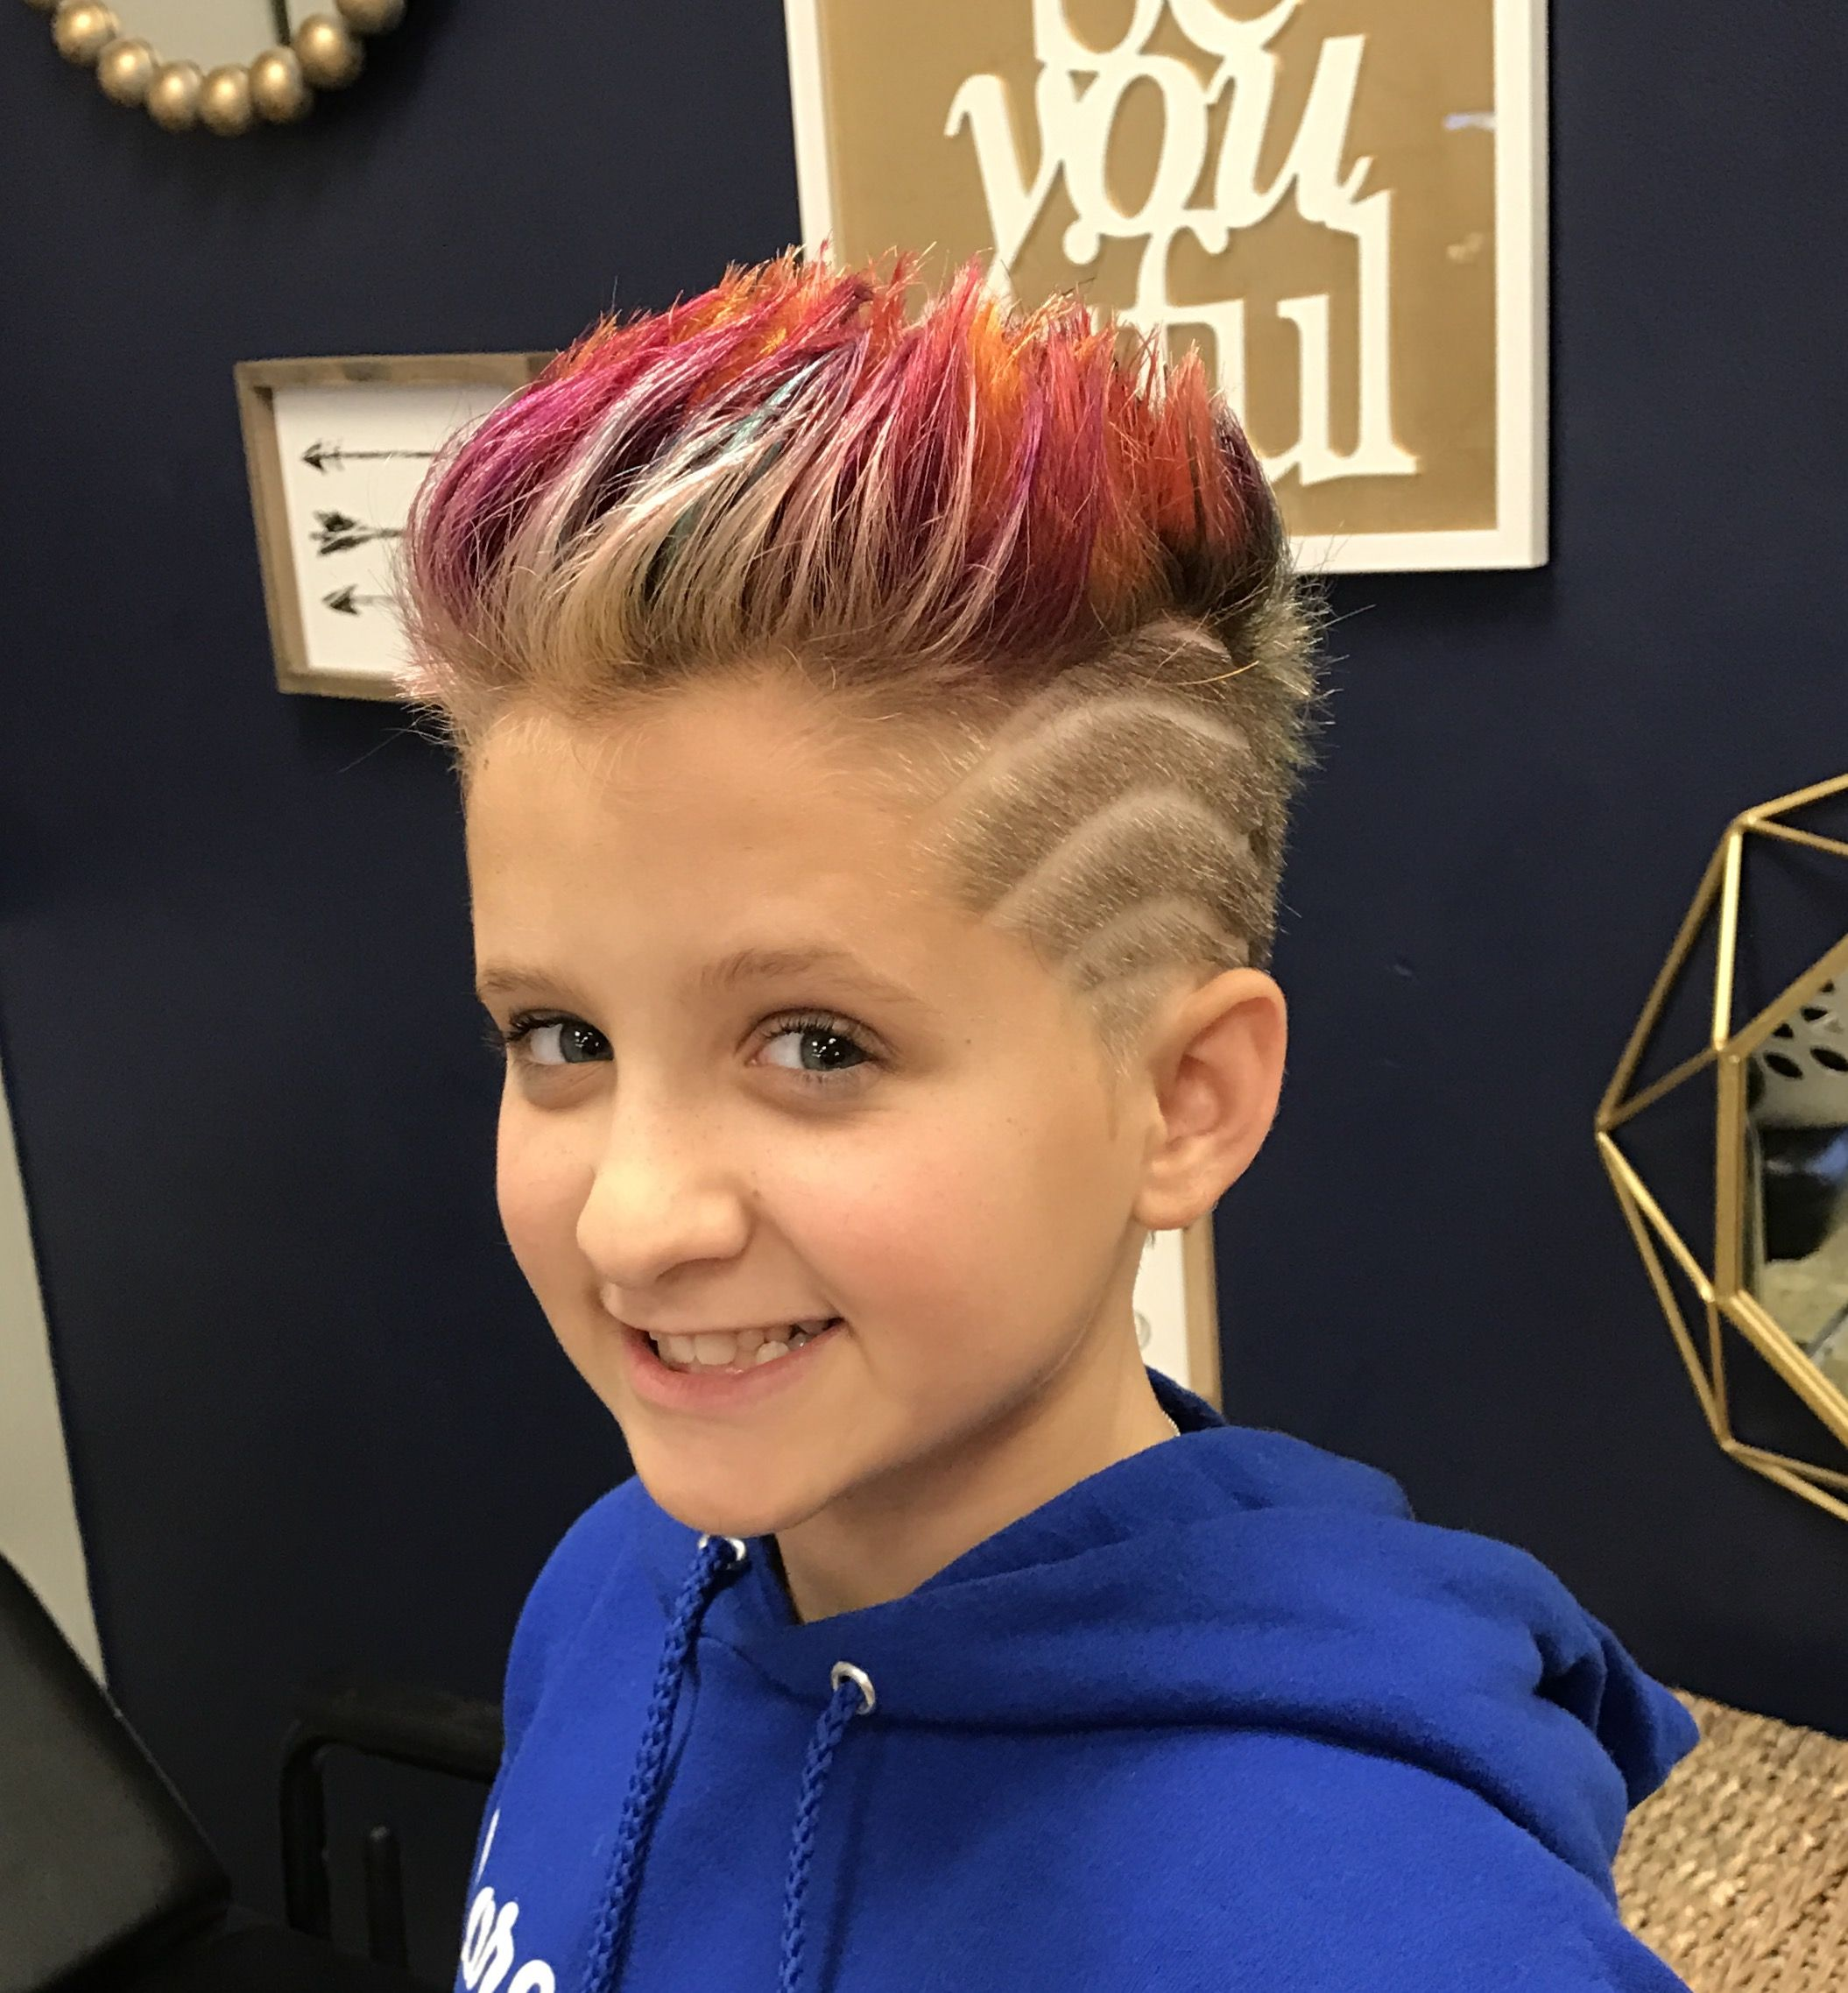 best pre-chemo haircut ever! | kids in 2019 | hair cuts, summer